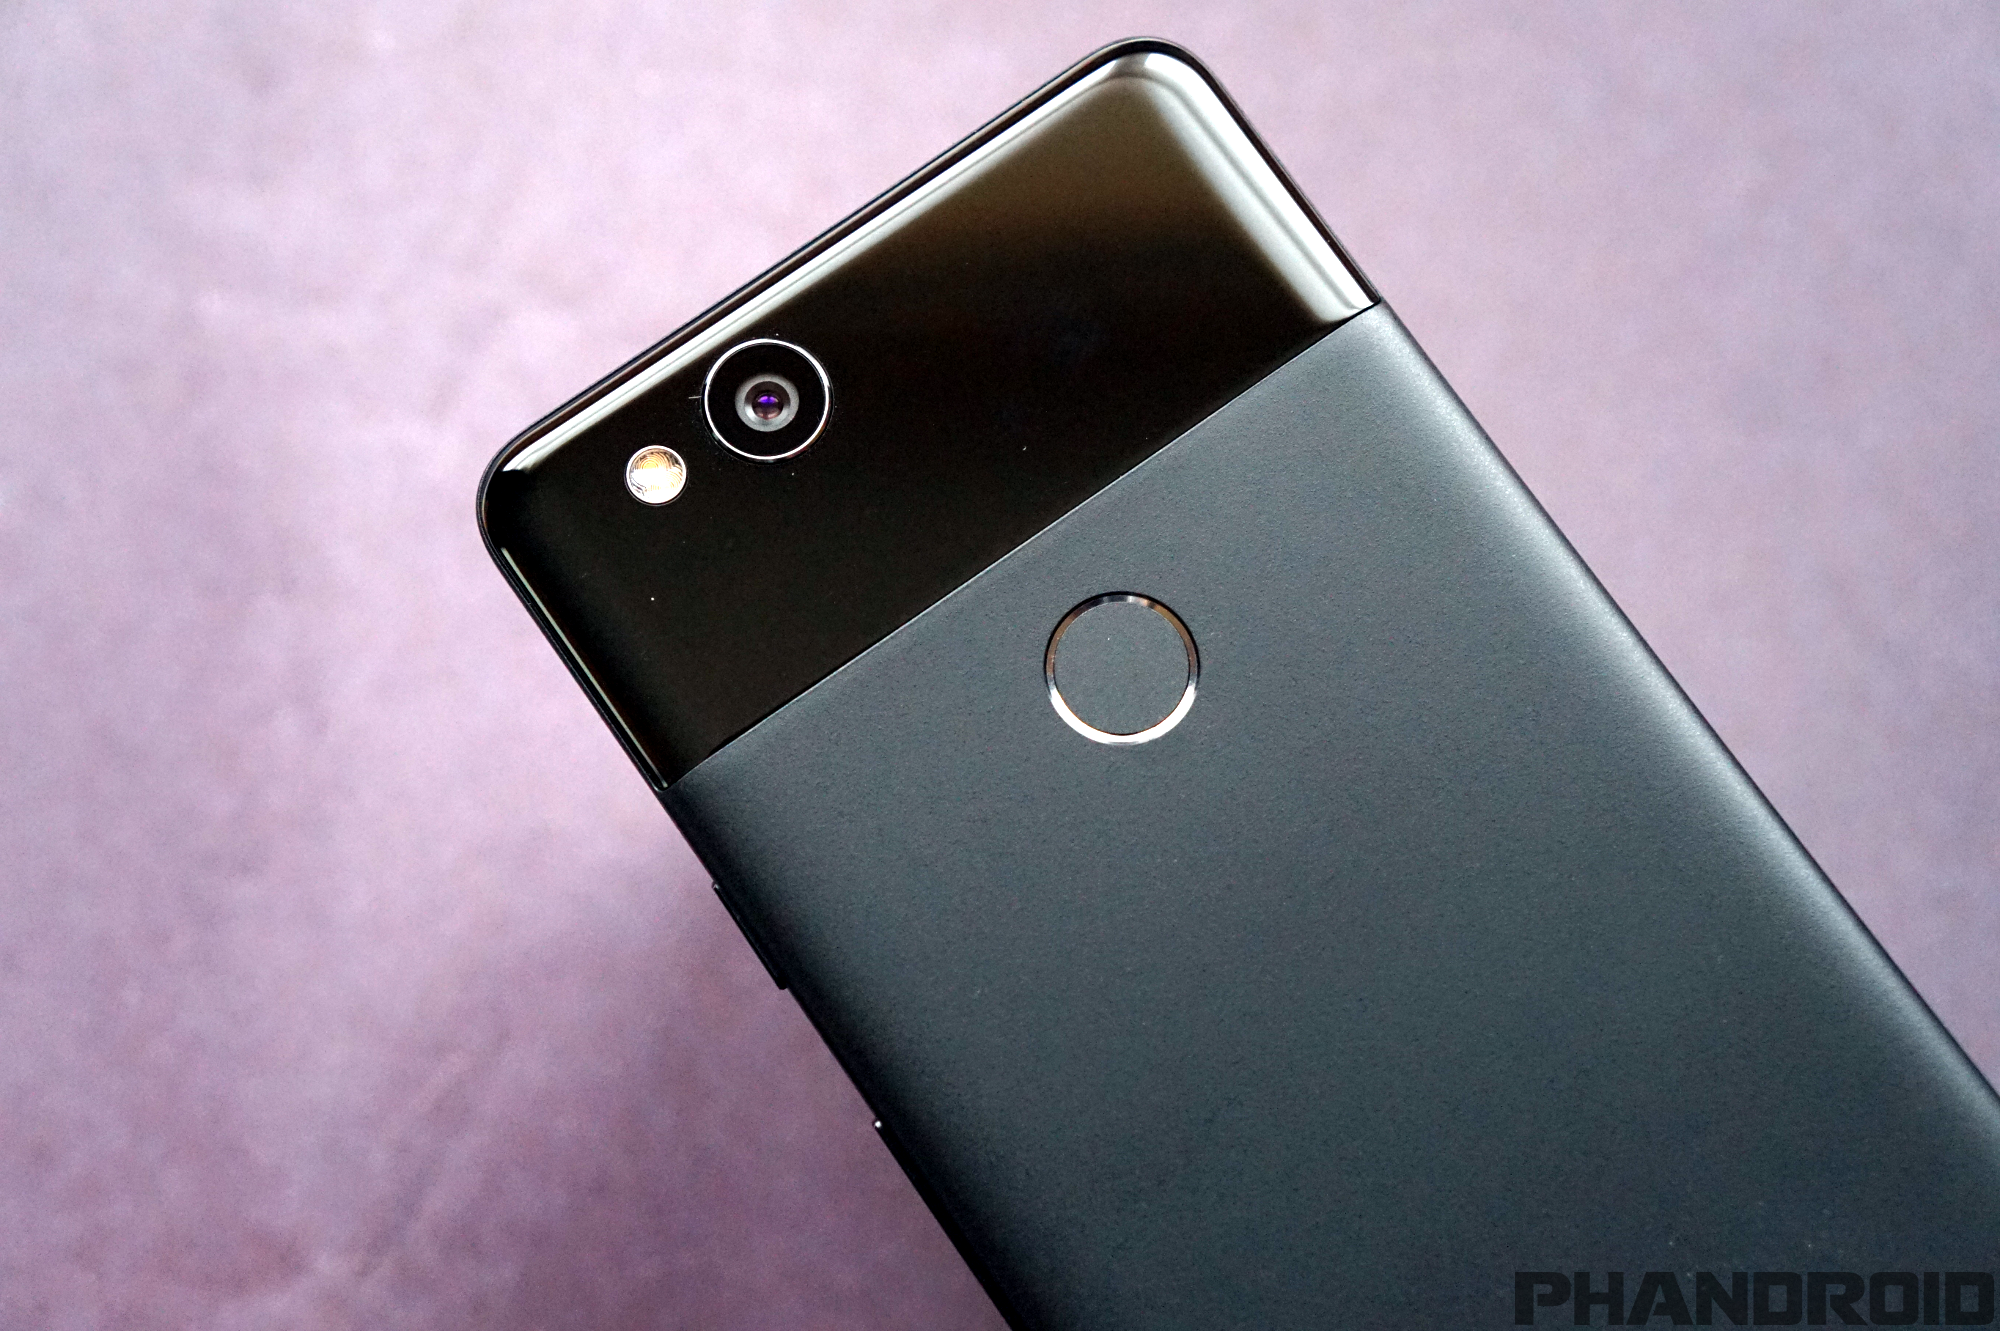 Turns out that you can unlock the Verizon Pixel 2's bootloader